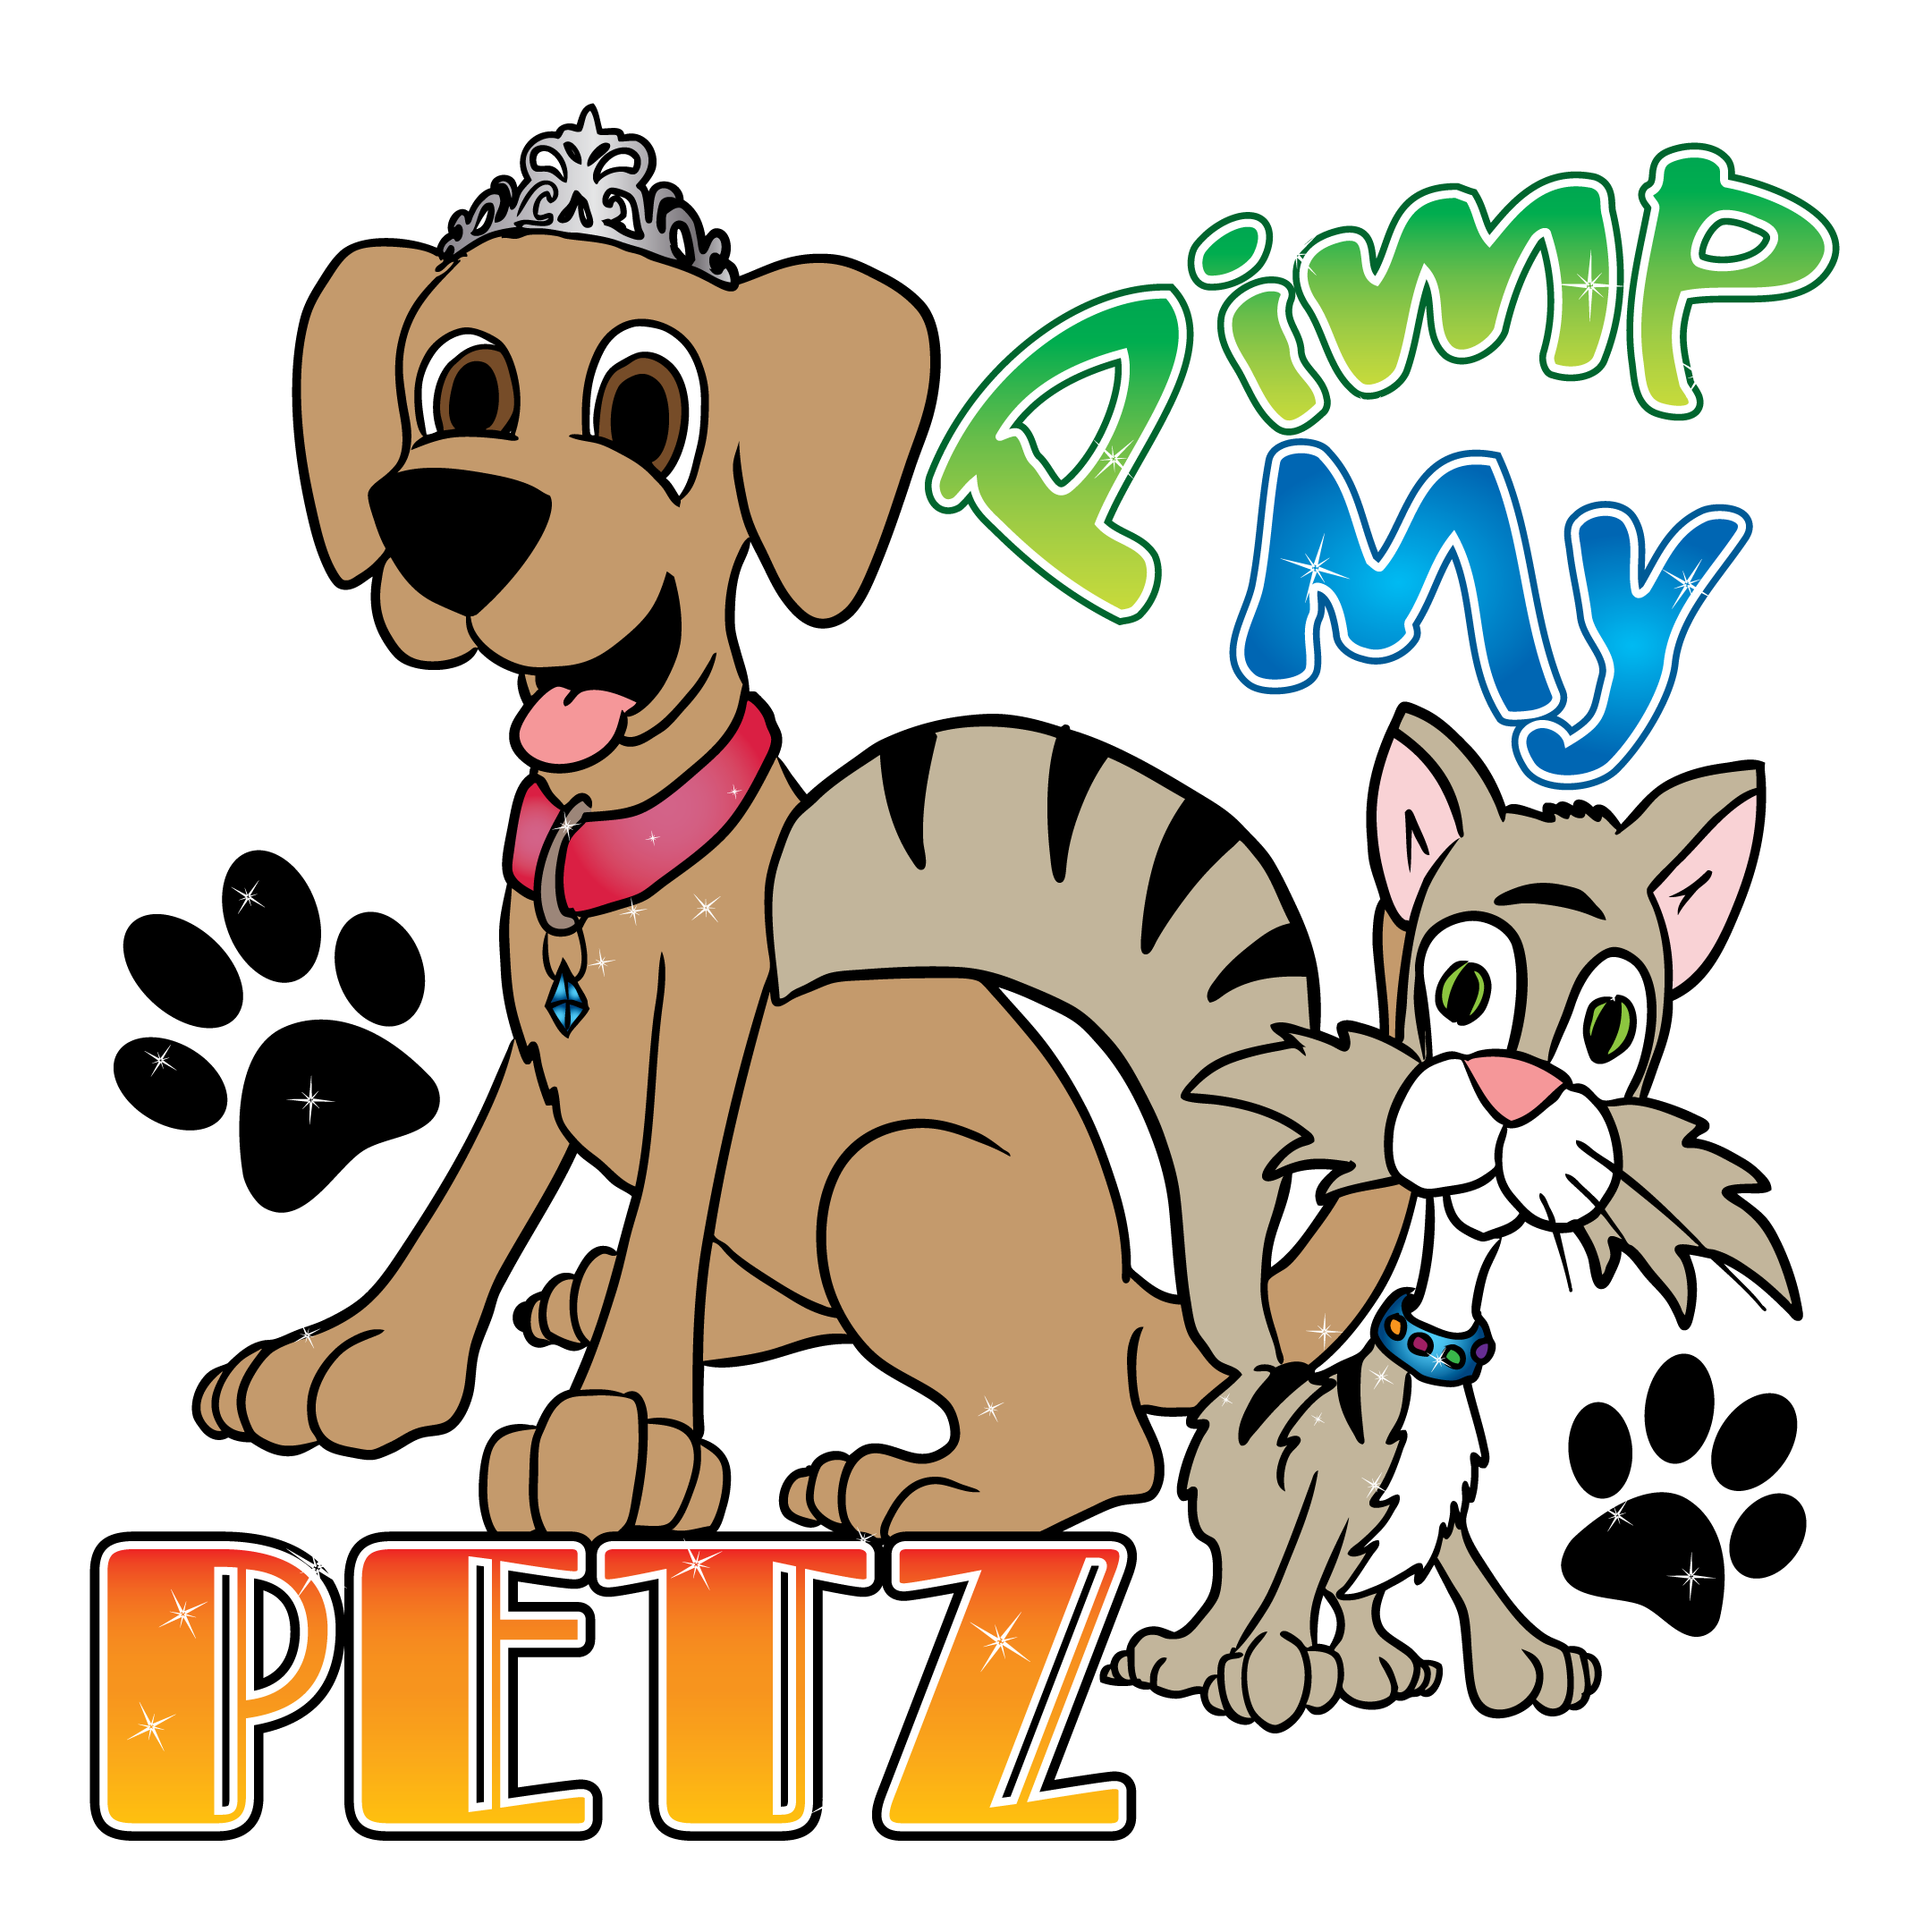 Dog brushing teeth clipart picture transparent download Pimp My Petz! | picture transparent download